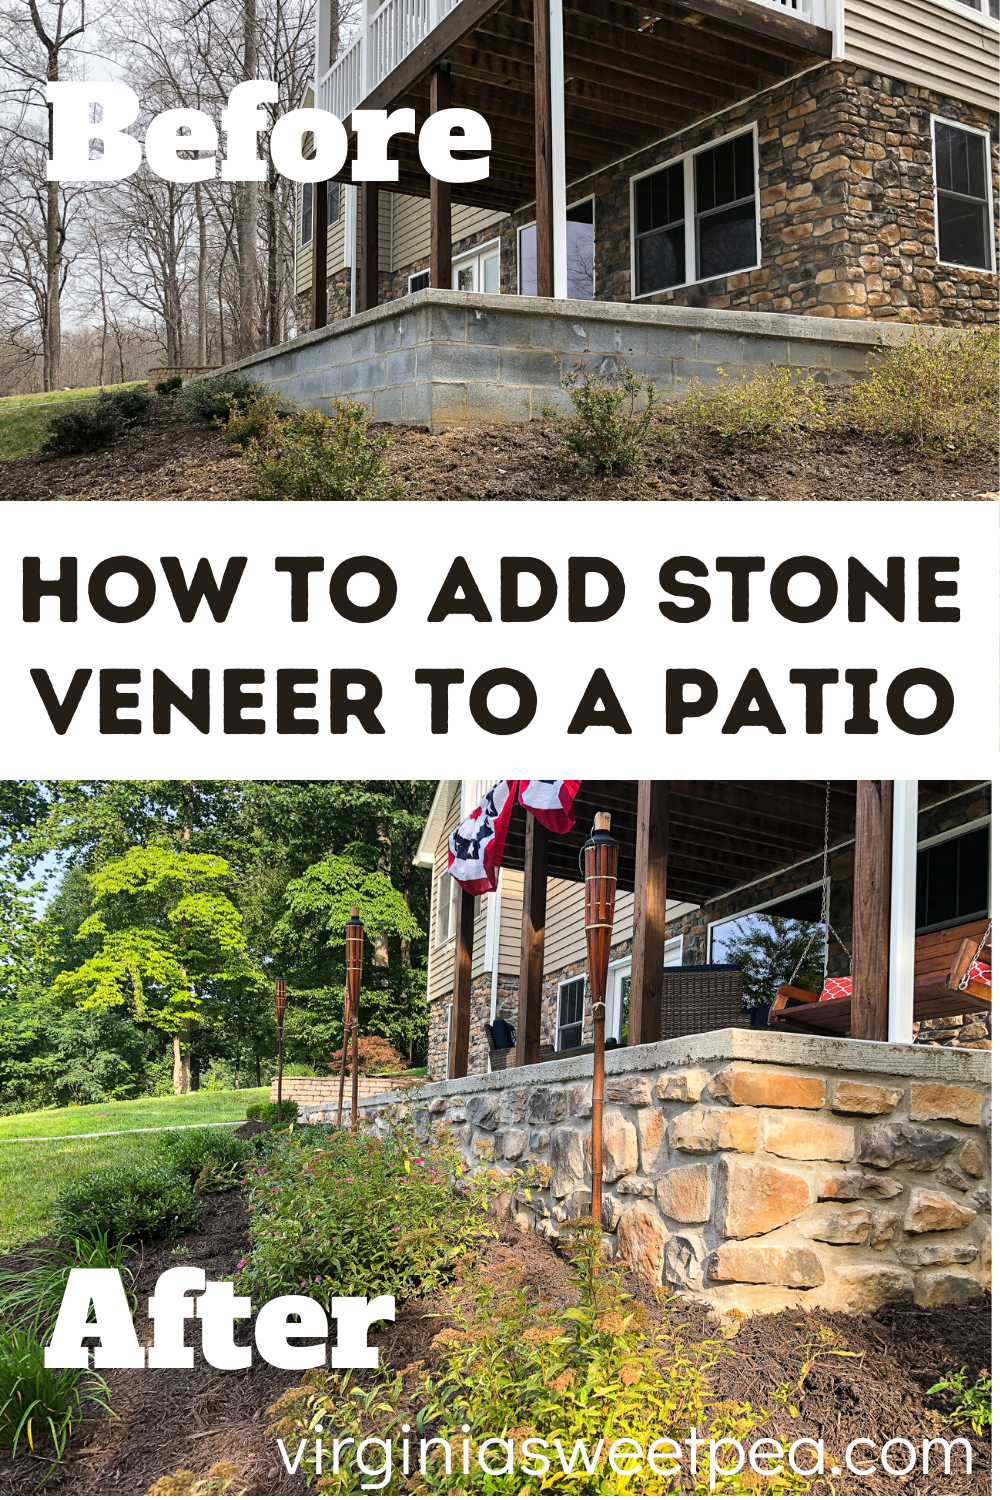 How to Add Stone Veneer to a Patio - Tired of looking at boring cinder block patio or house walls?  Learn how to add stone veneer to give the walls a finished look.  #stoneveneer #diystoneveneer via @spaula